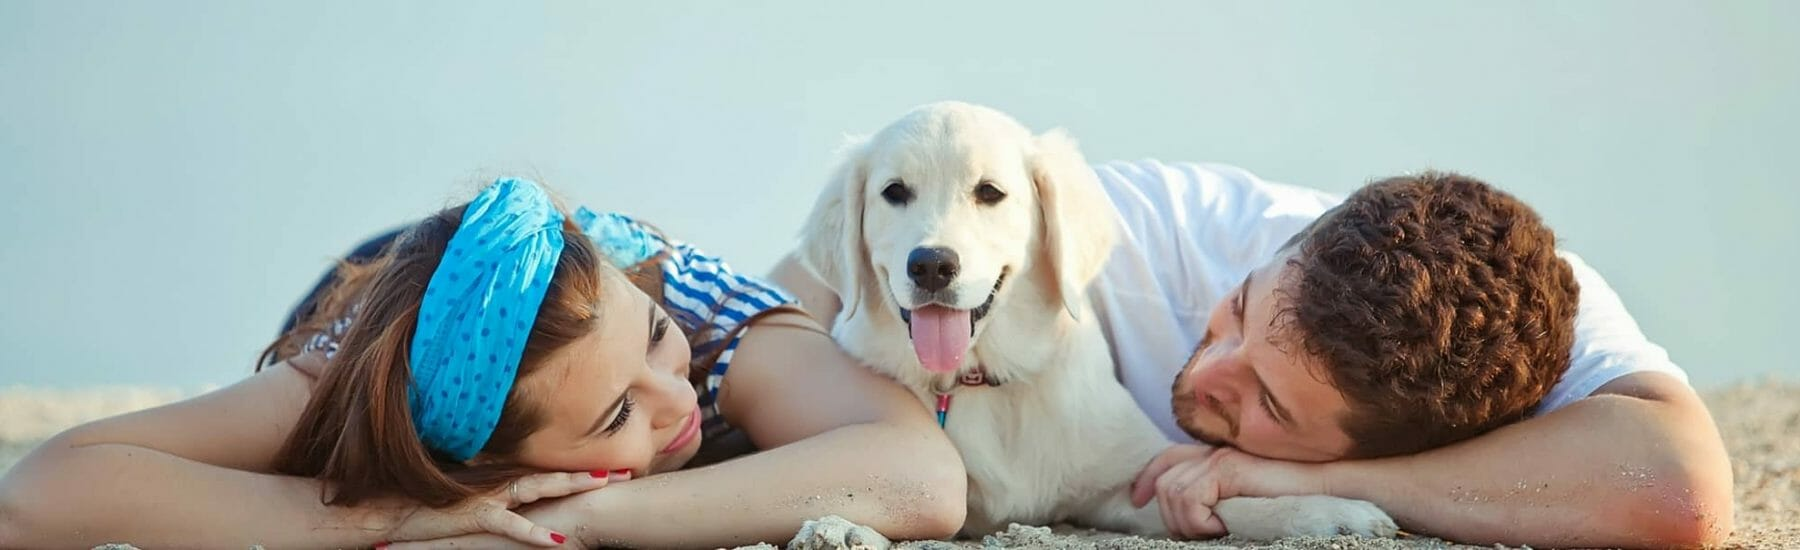 A woman and man lying down on sand with a dog in between them